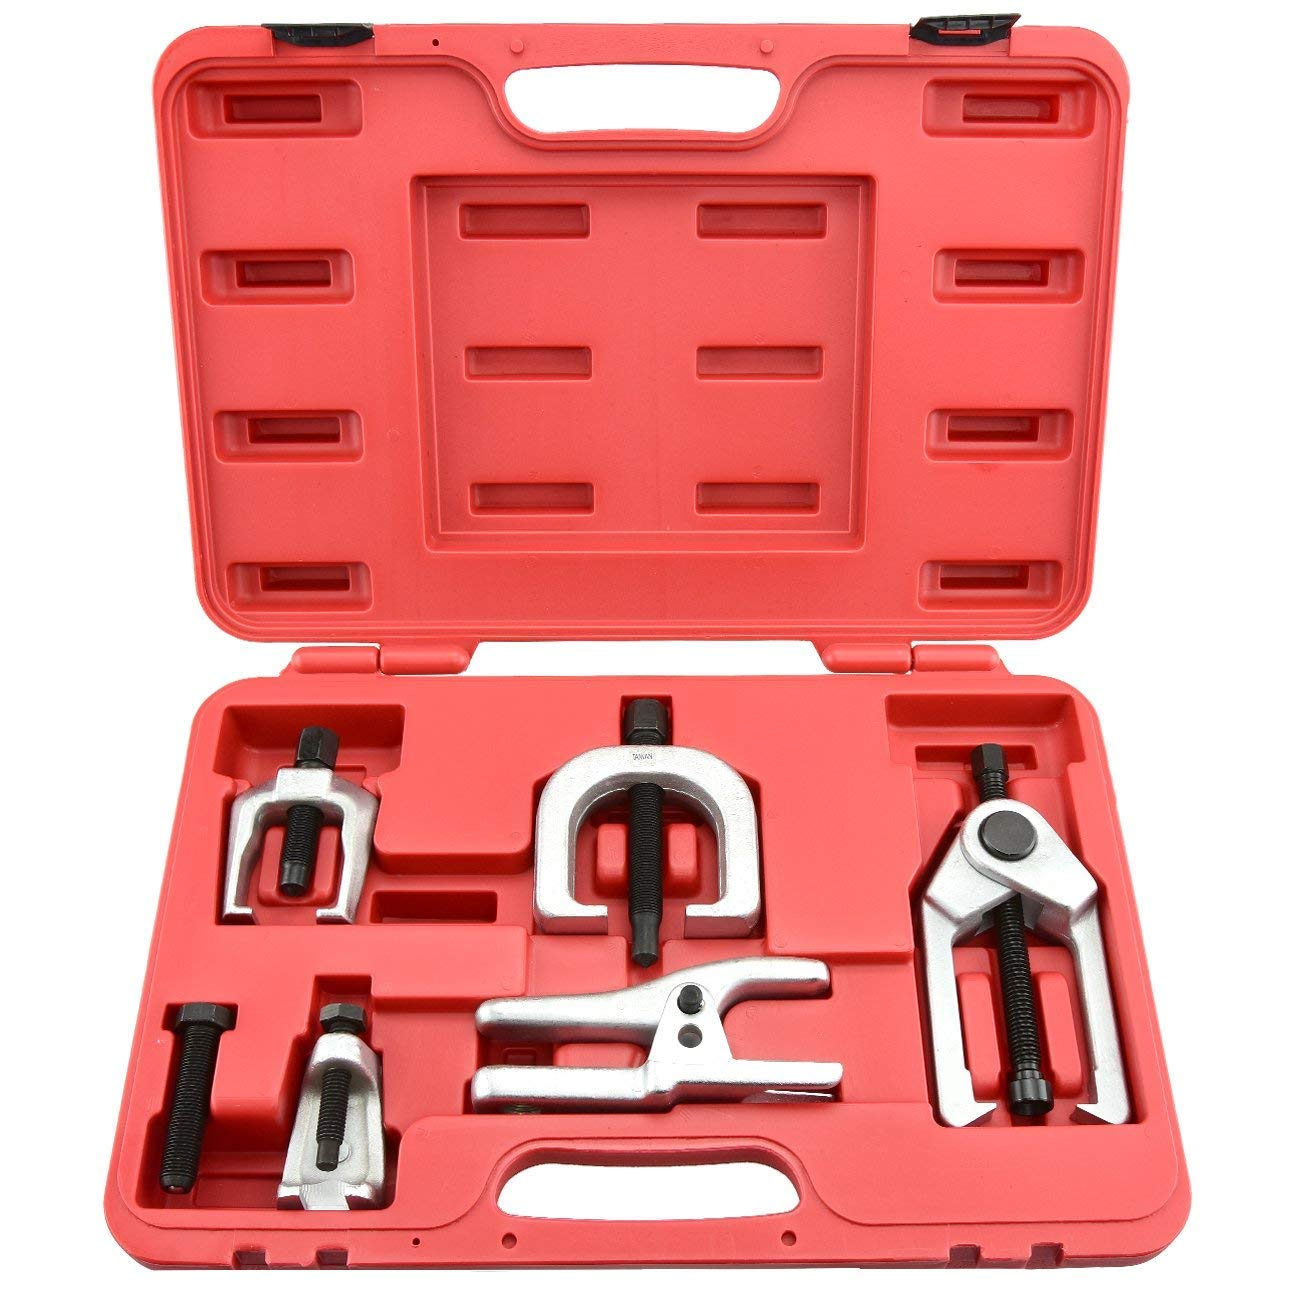 Ball Joint Separator Kit - Pitman Arm Puller Tool - Tie Rod End Remover - Front End Service Set – Outer Tie Rod Removal - 6 Piece by Jecr (Image #2)